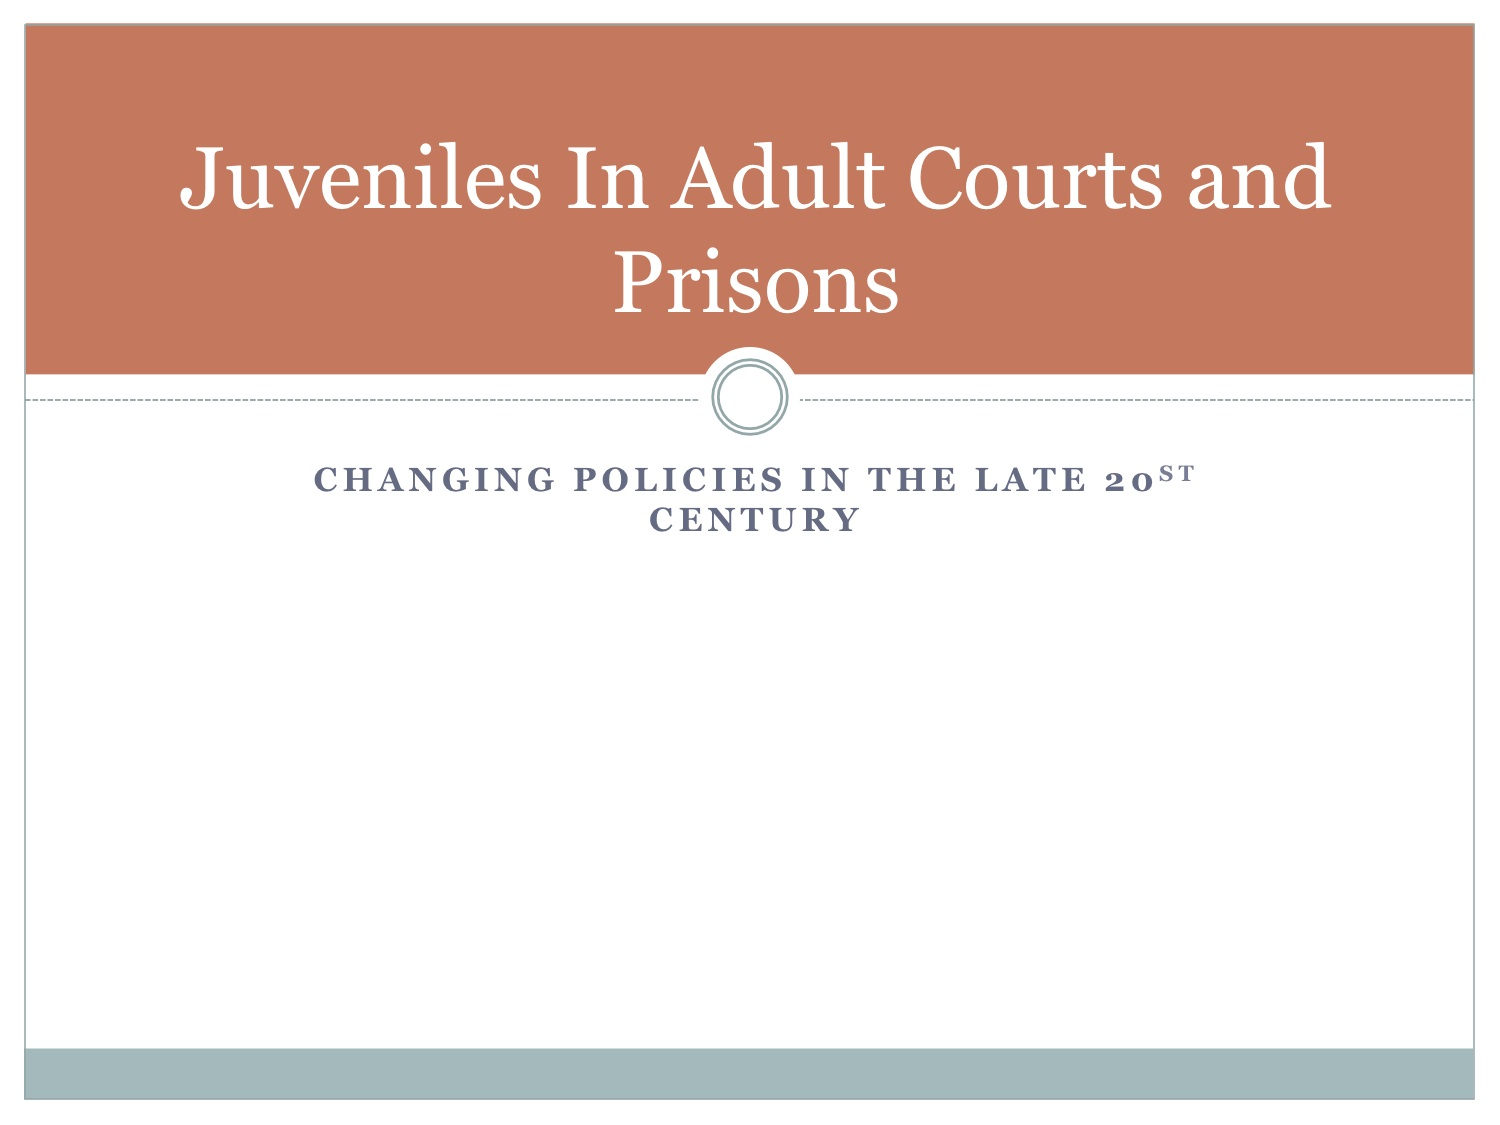 juvenile and adult courts essay Juvenile offenders should be tried as adults essay during the 1970s and 1980s the system of juvenile justice had been changed drastically across the united states: a substantial share of the crimes committed by juvenile moved to the jurisdiction of the criminal courts.